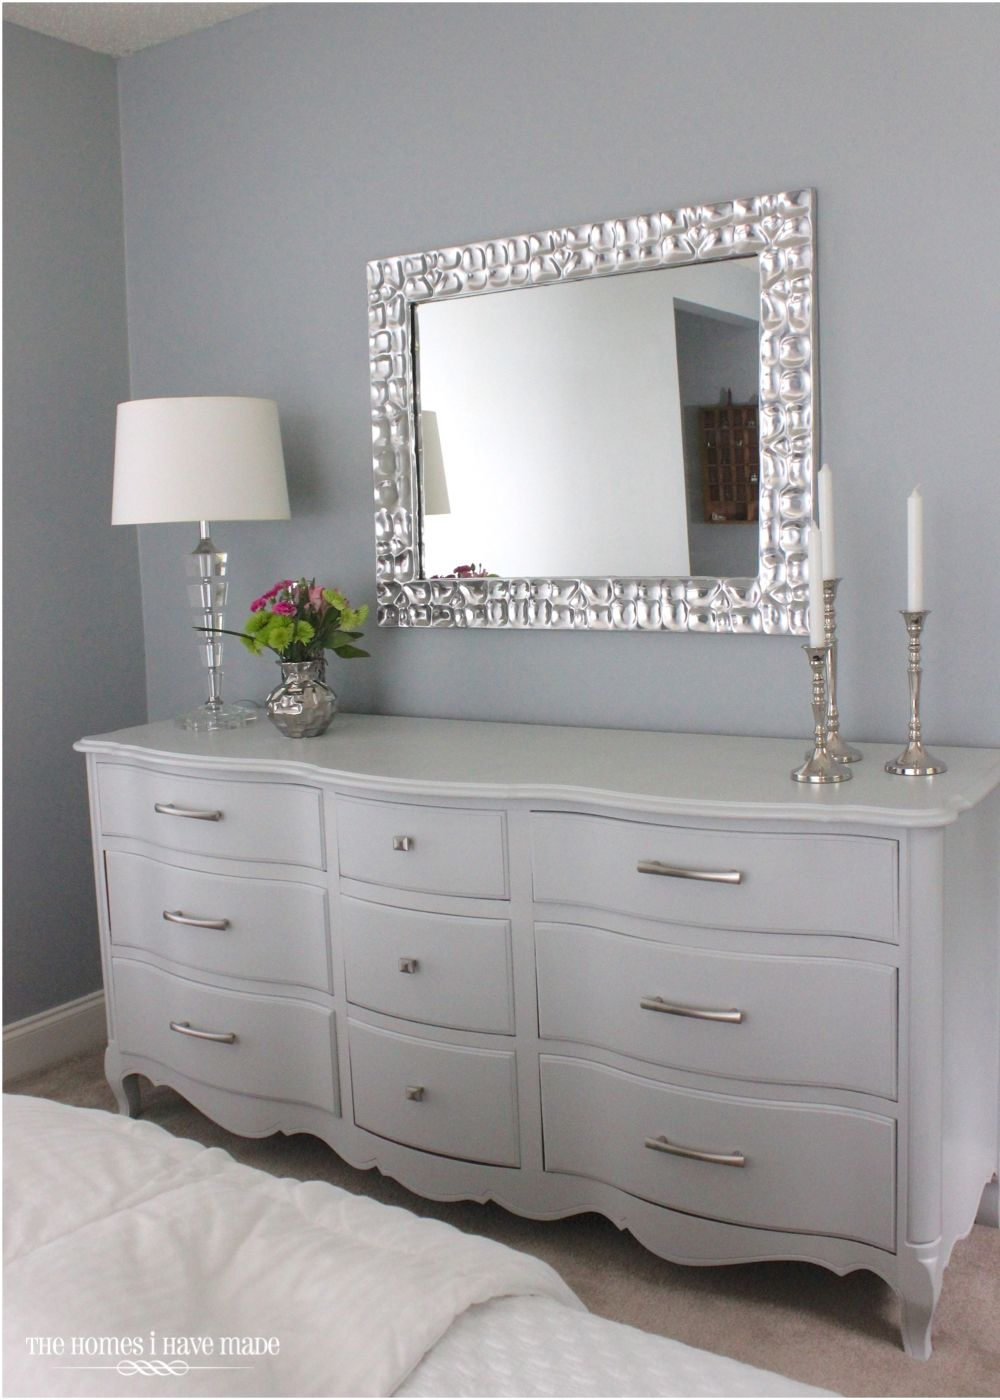 How To Make A Knock Off Metallic Mirror Frame Love The Gray Dresser